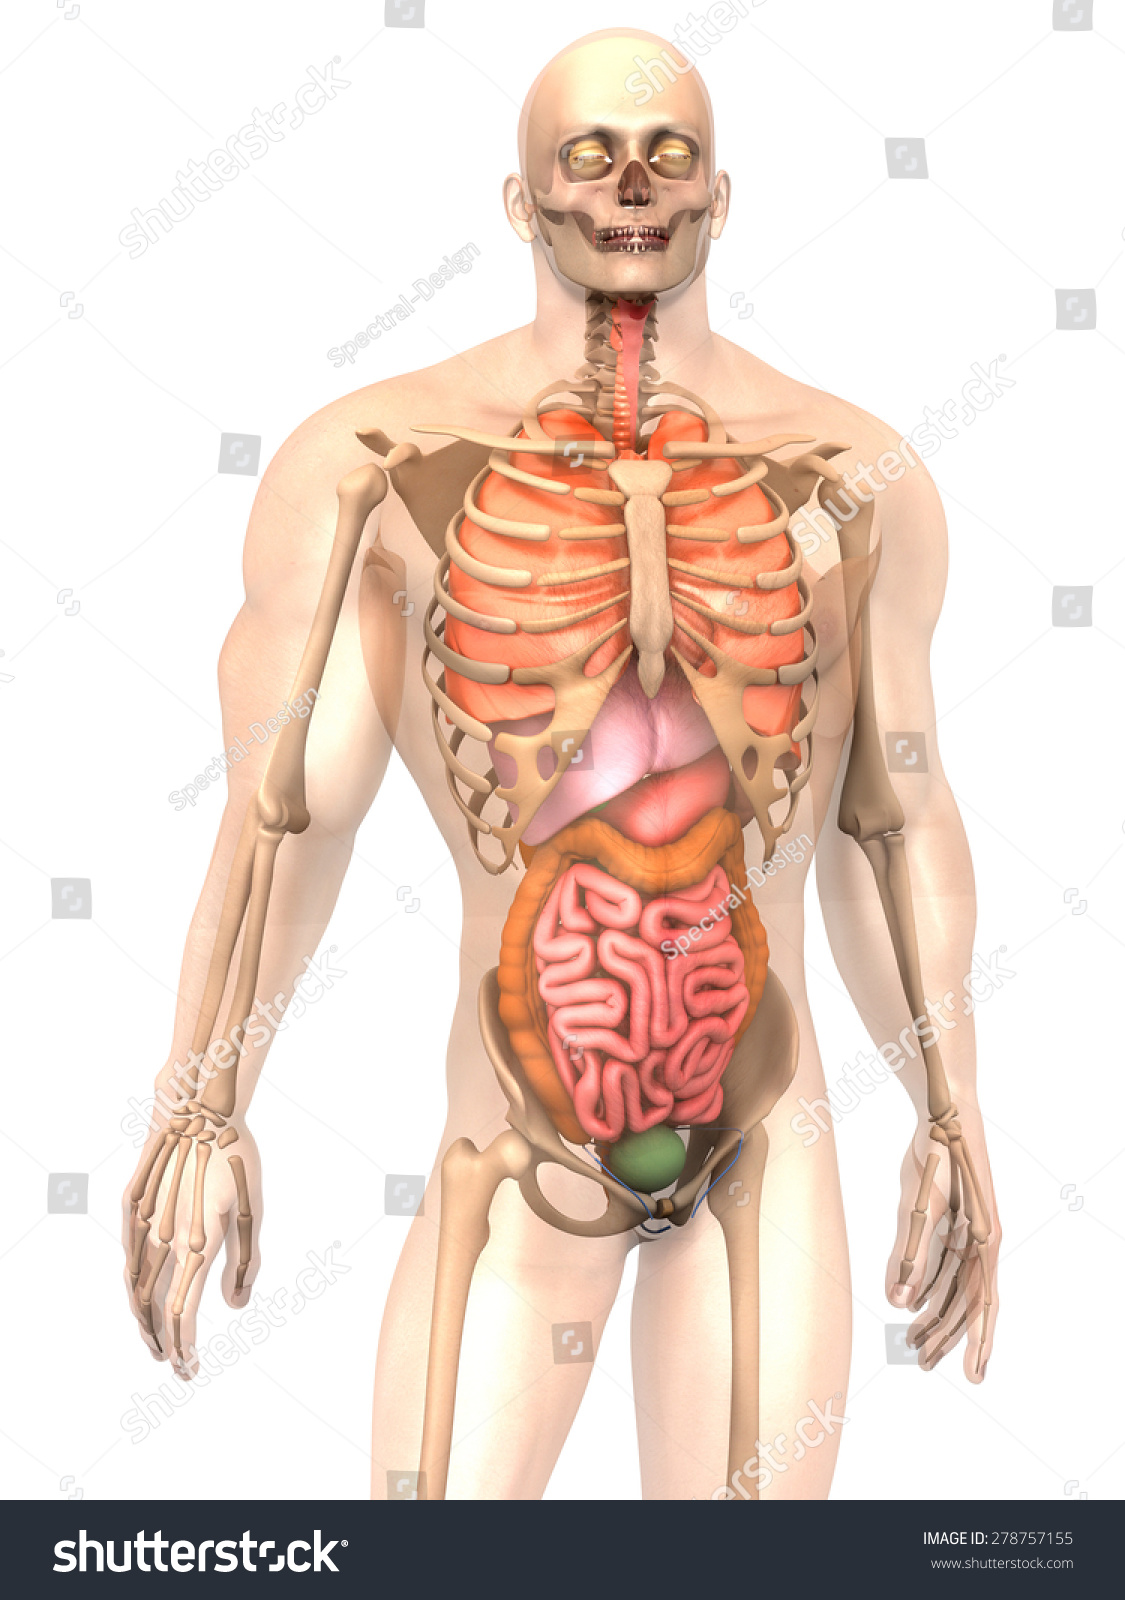 3 D Visualization Human Anatomy Internal Organs Stock Illustration